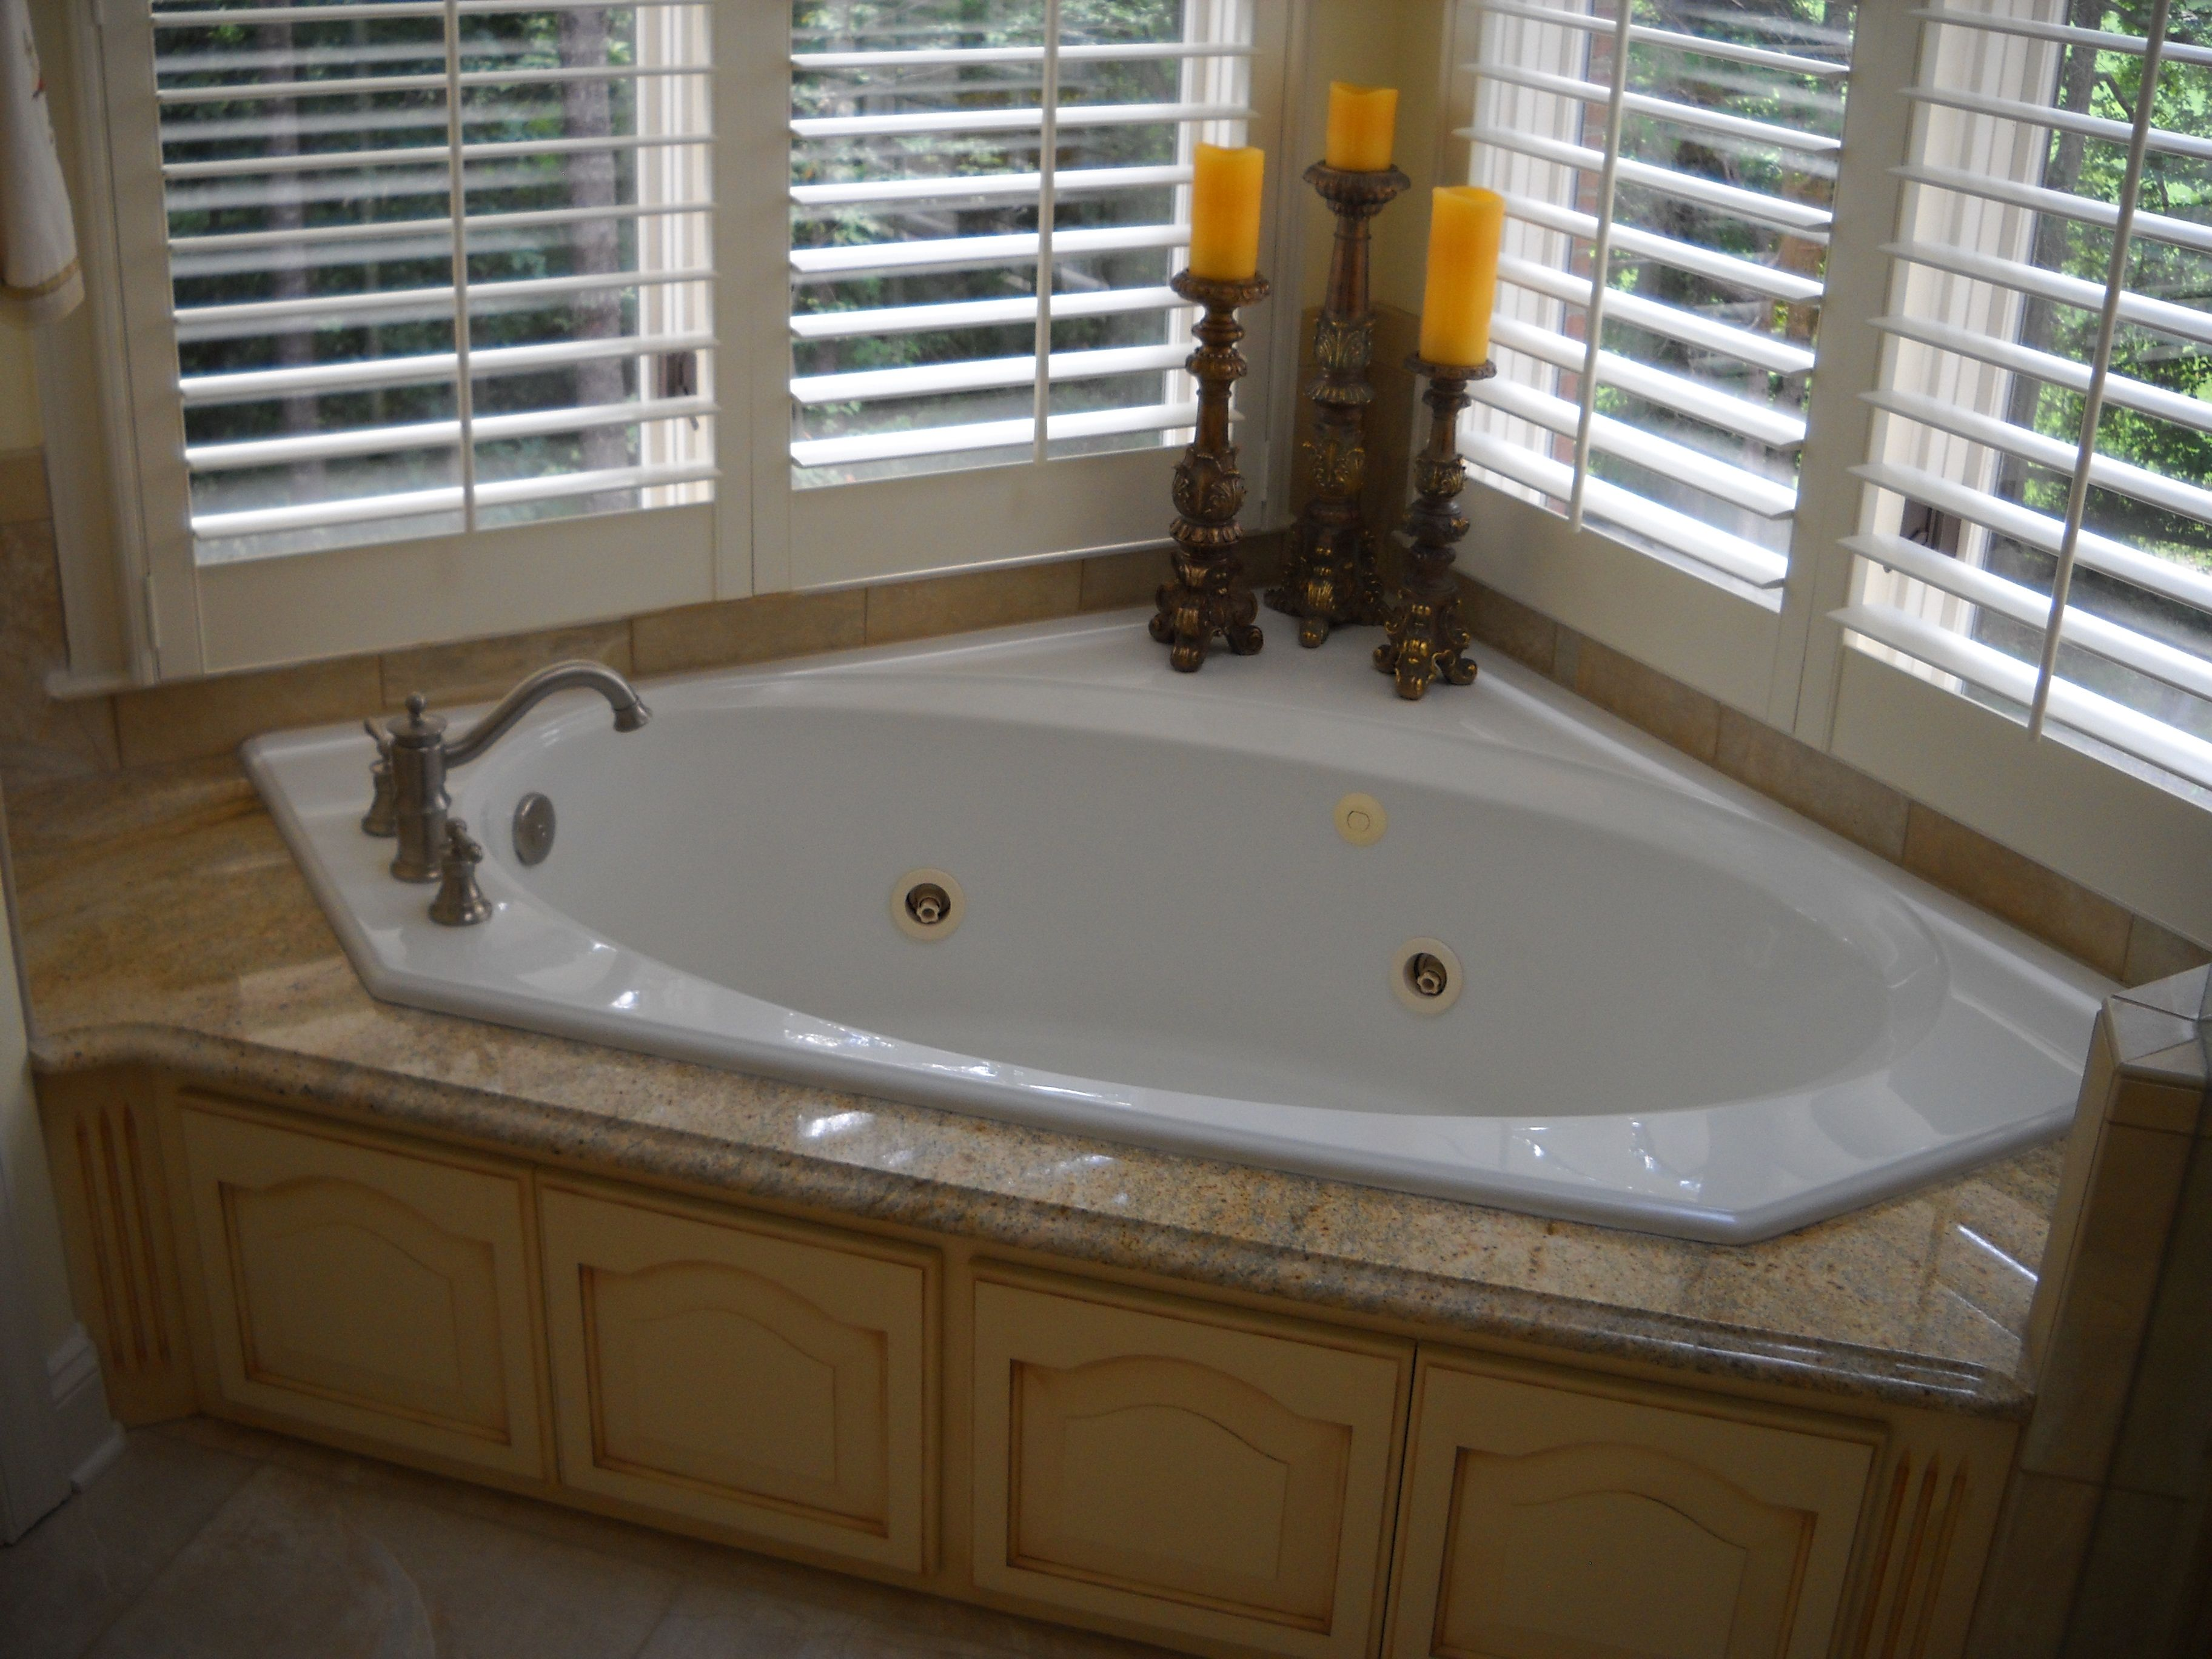 Garden Tub Ideas ideas to decorate garden tub Garden Tub